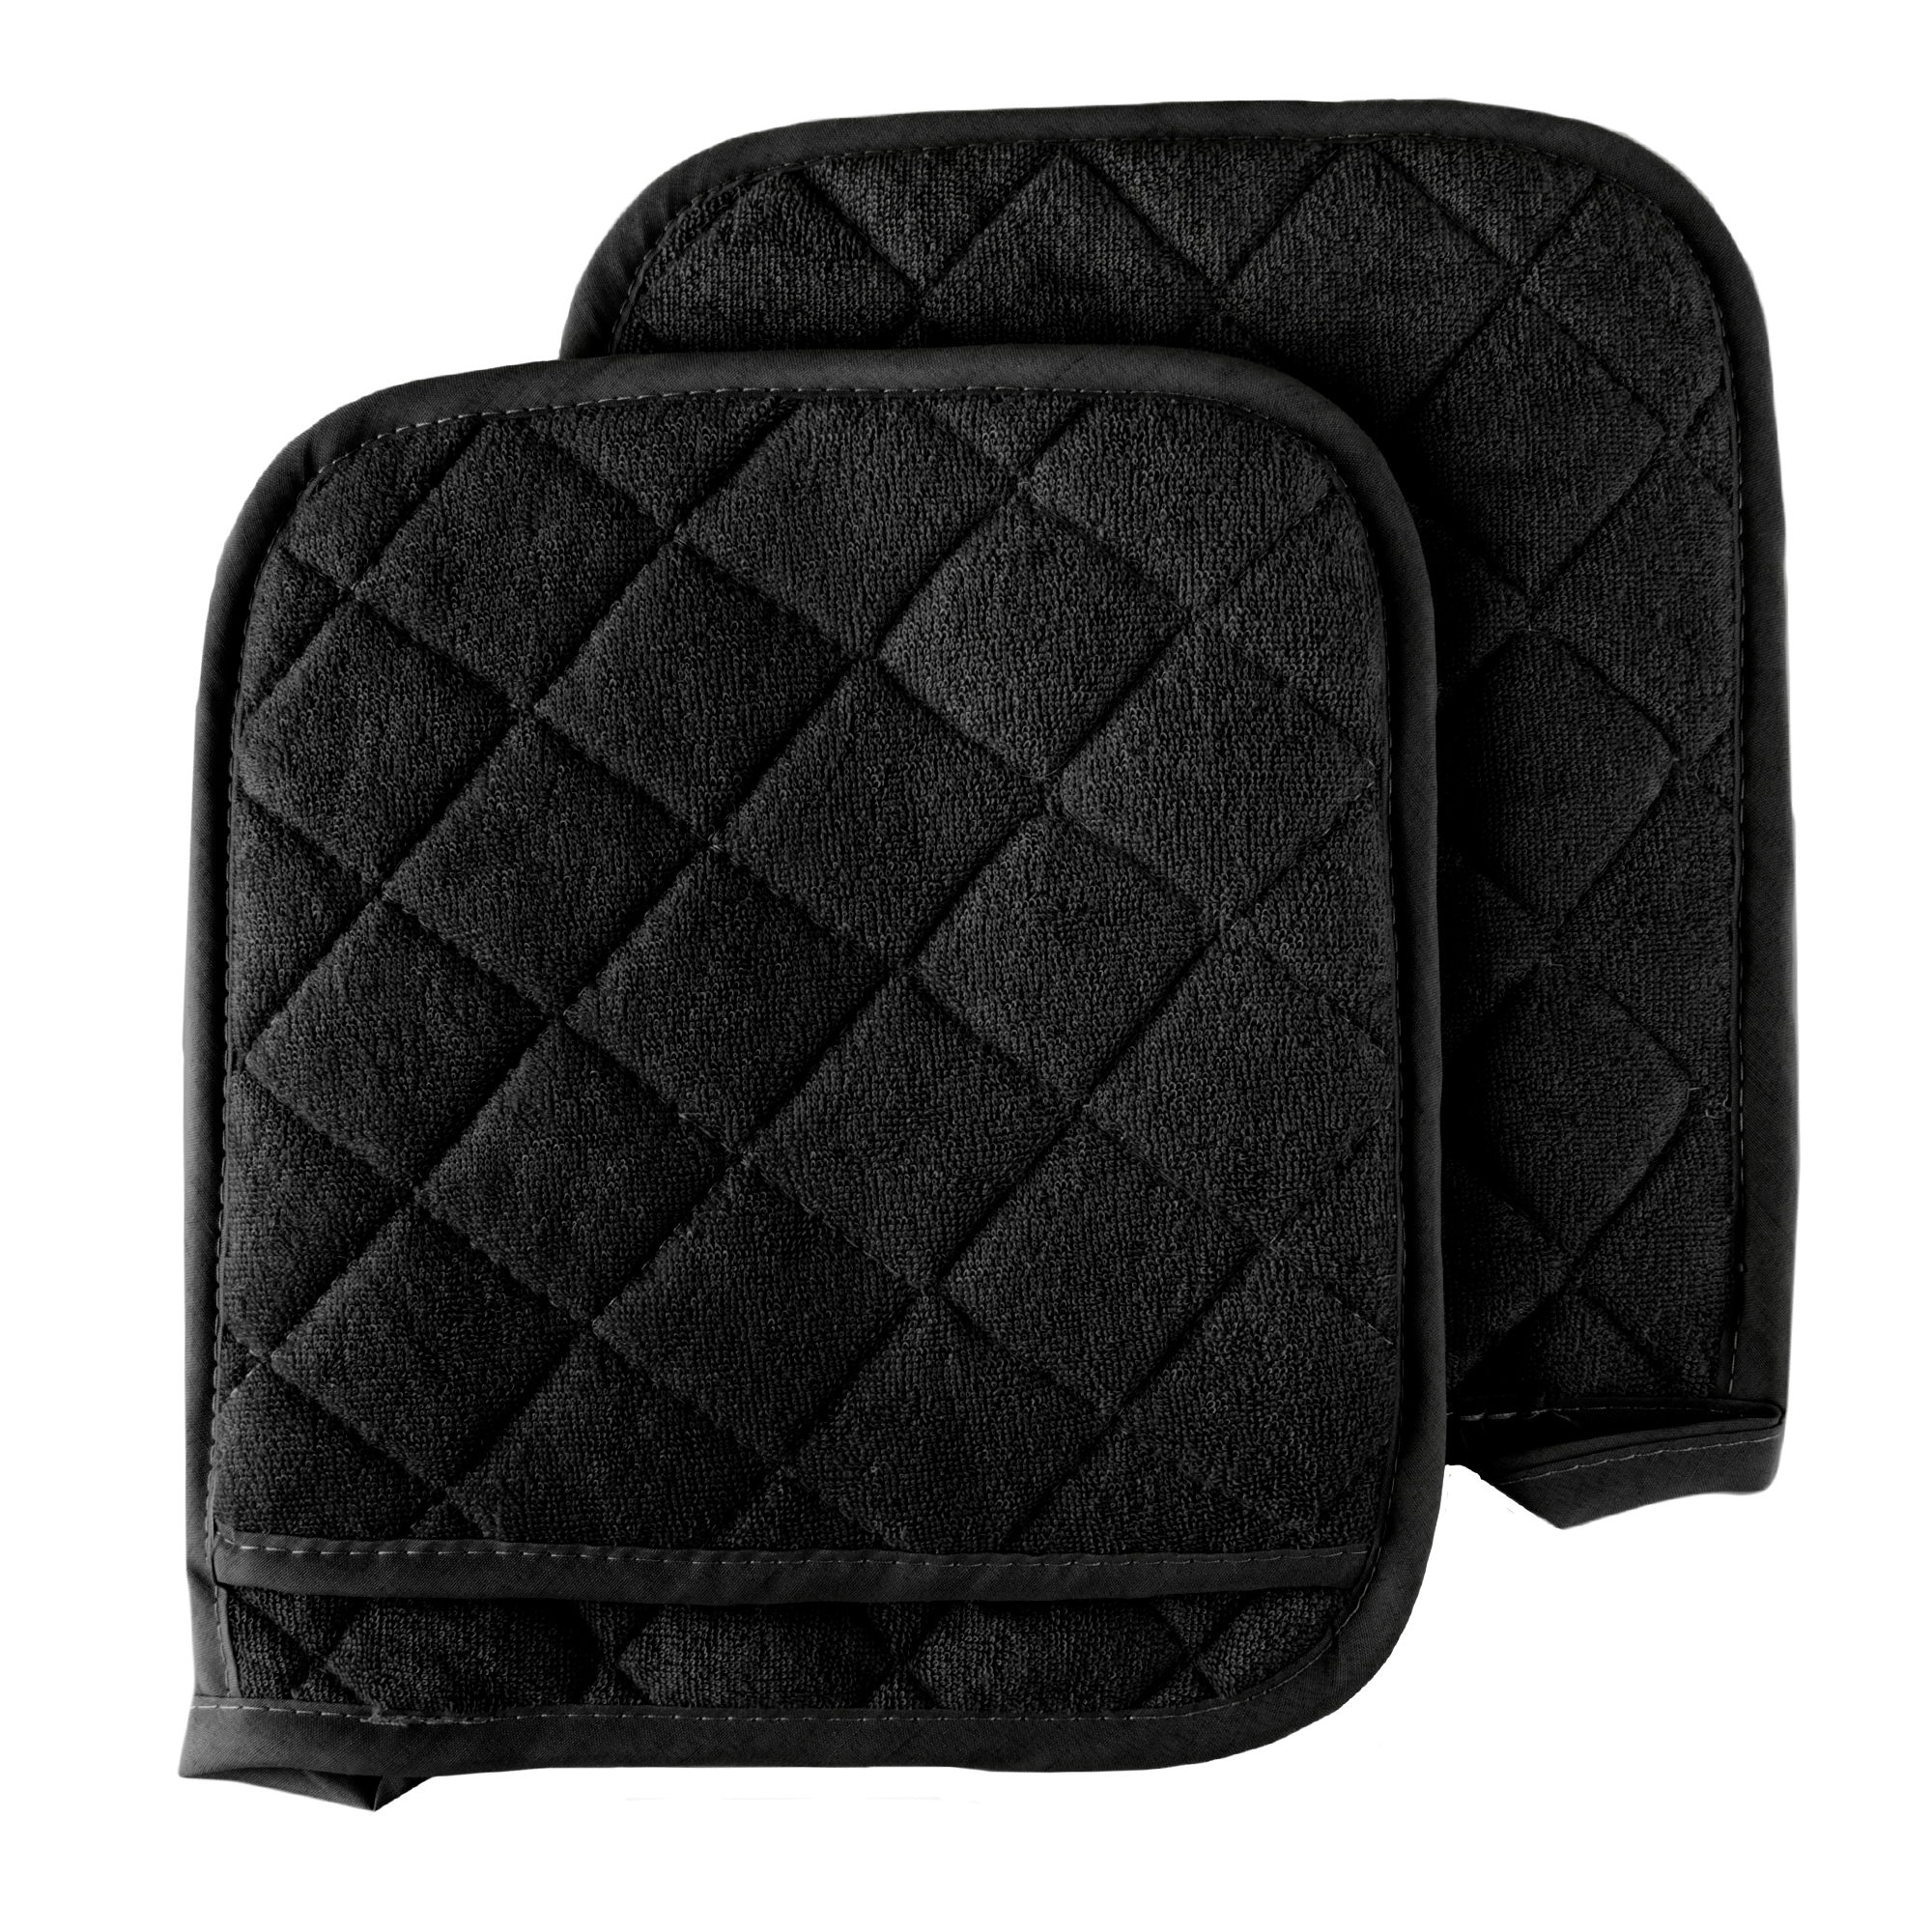 Pack of Four 4 Black Home Store Cotton Pot Holders 2 Sets of 2